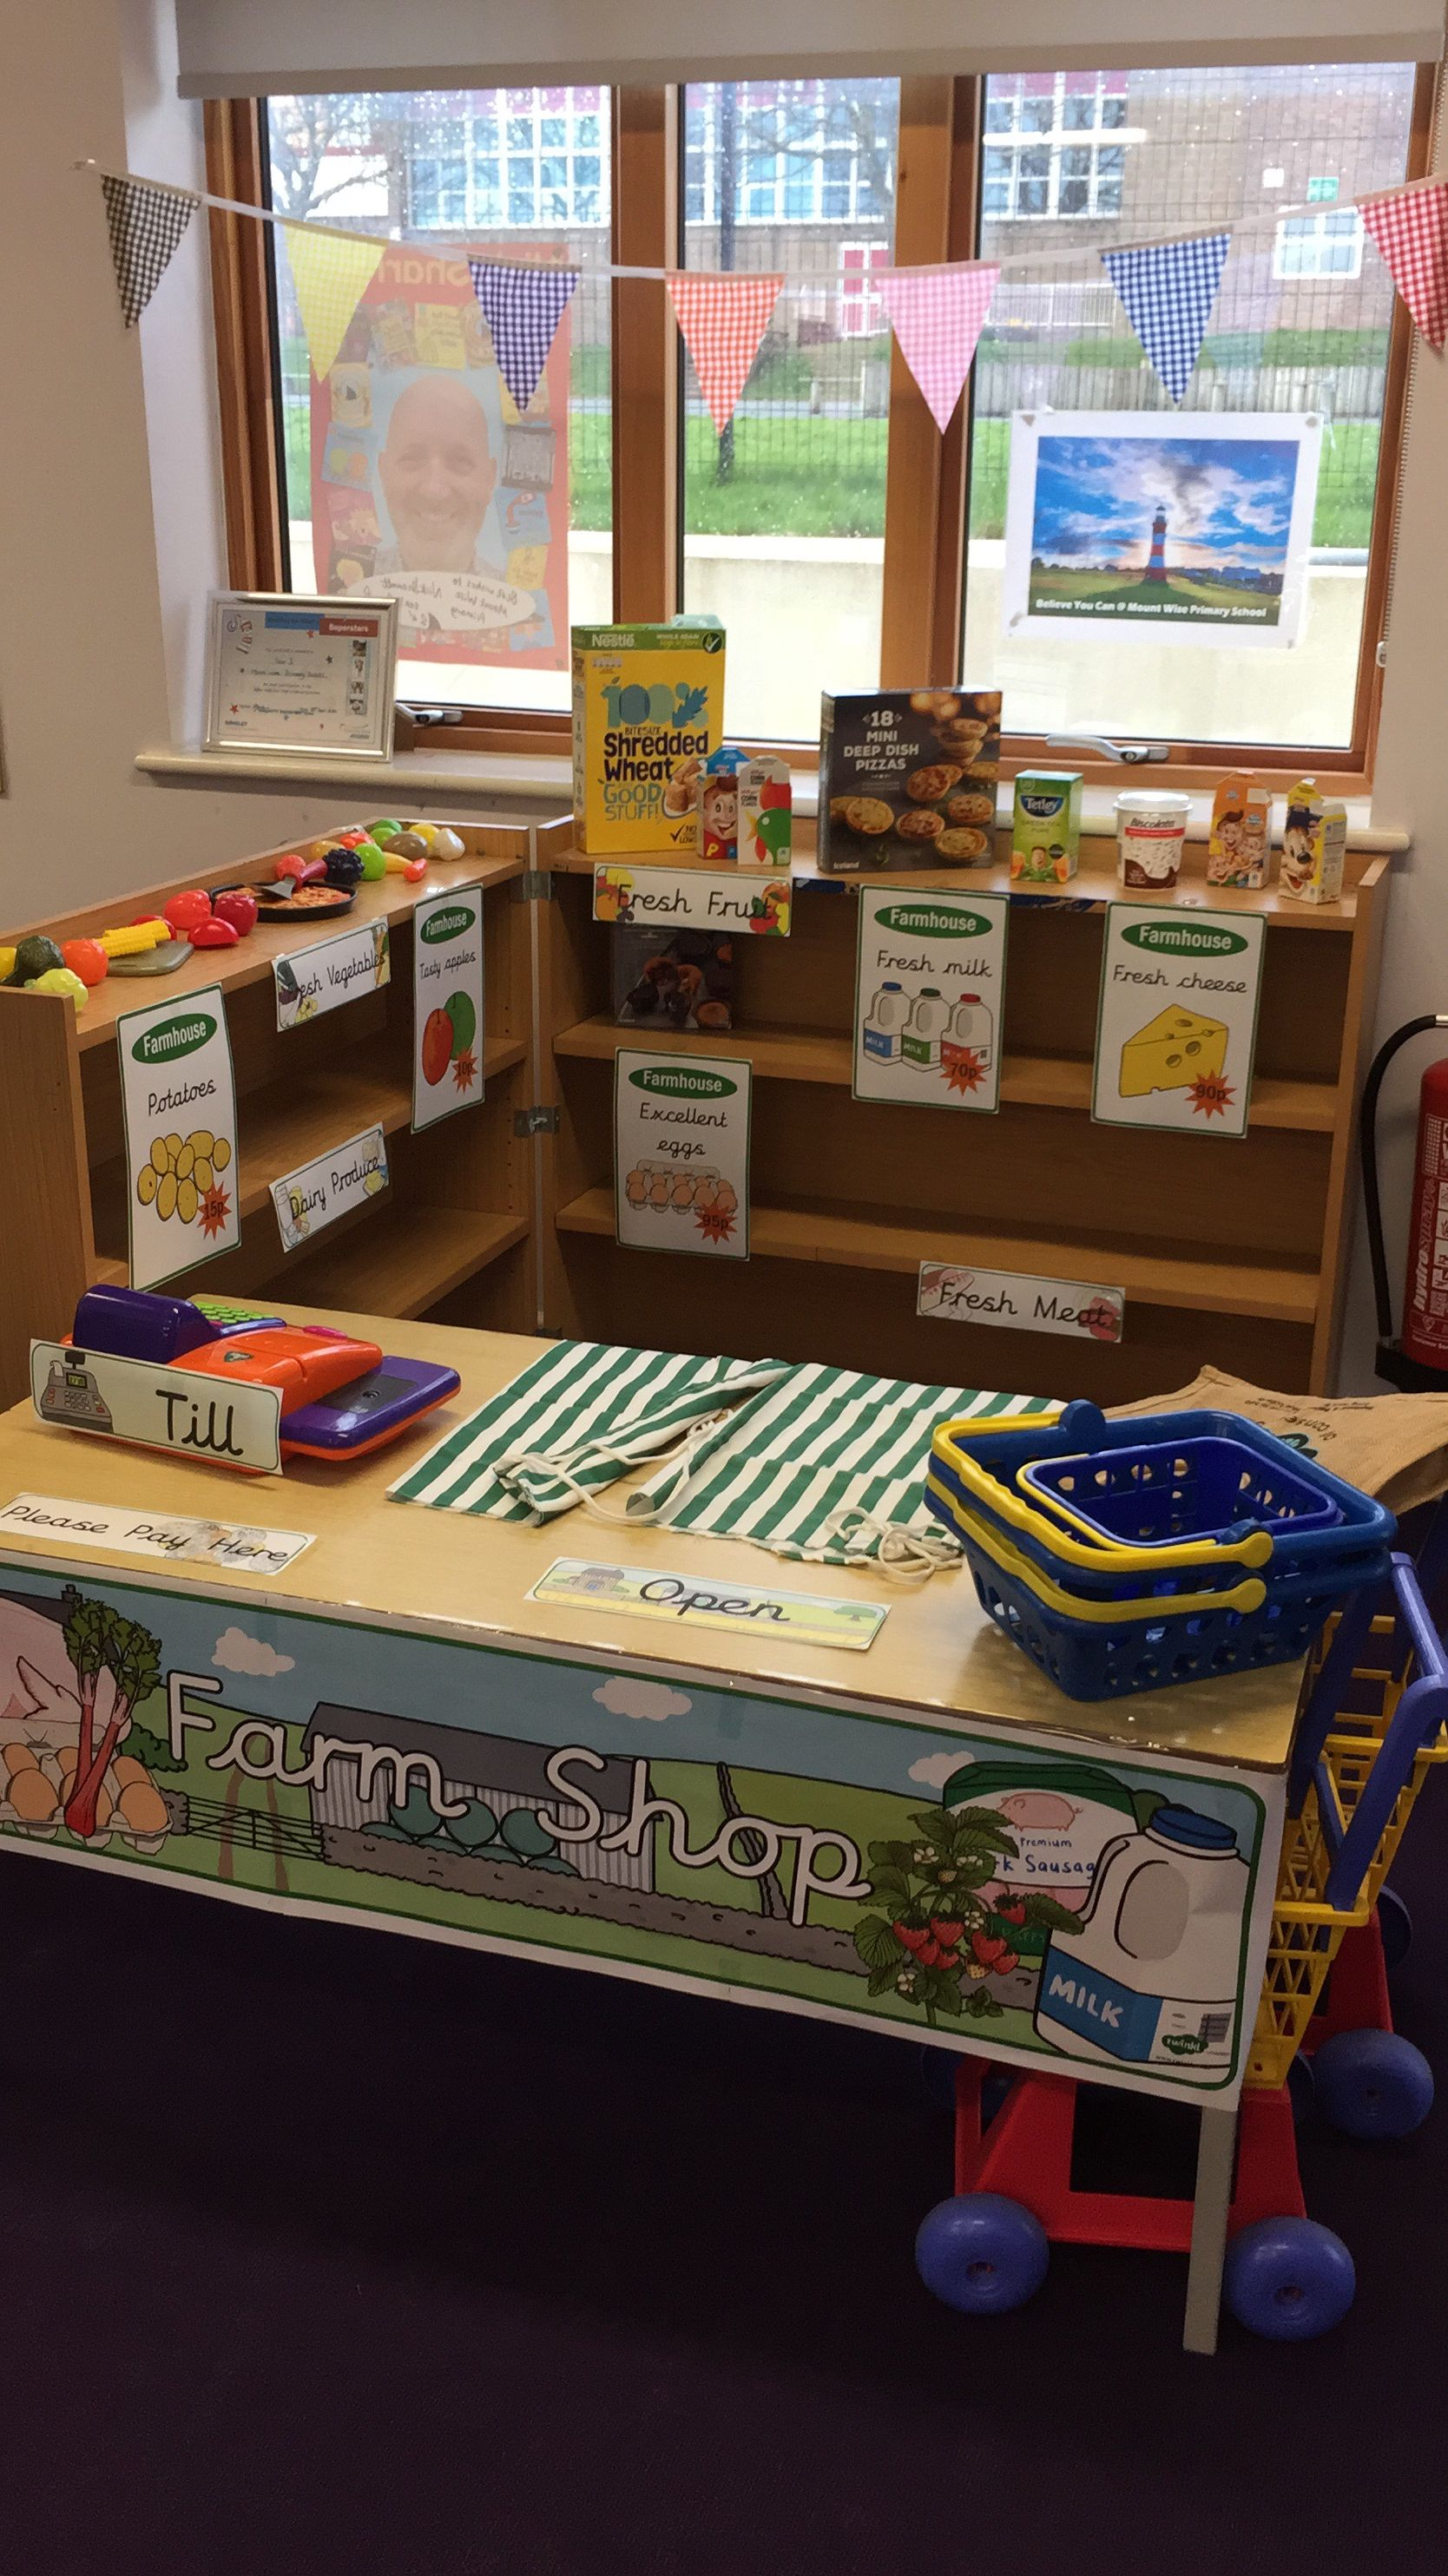 Outdoor Classroom Ideas Year 1 : Farm shop role play area for a year primary ks healthy